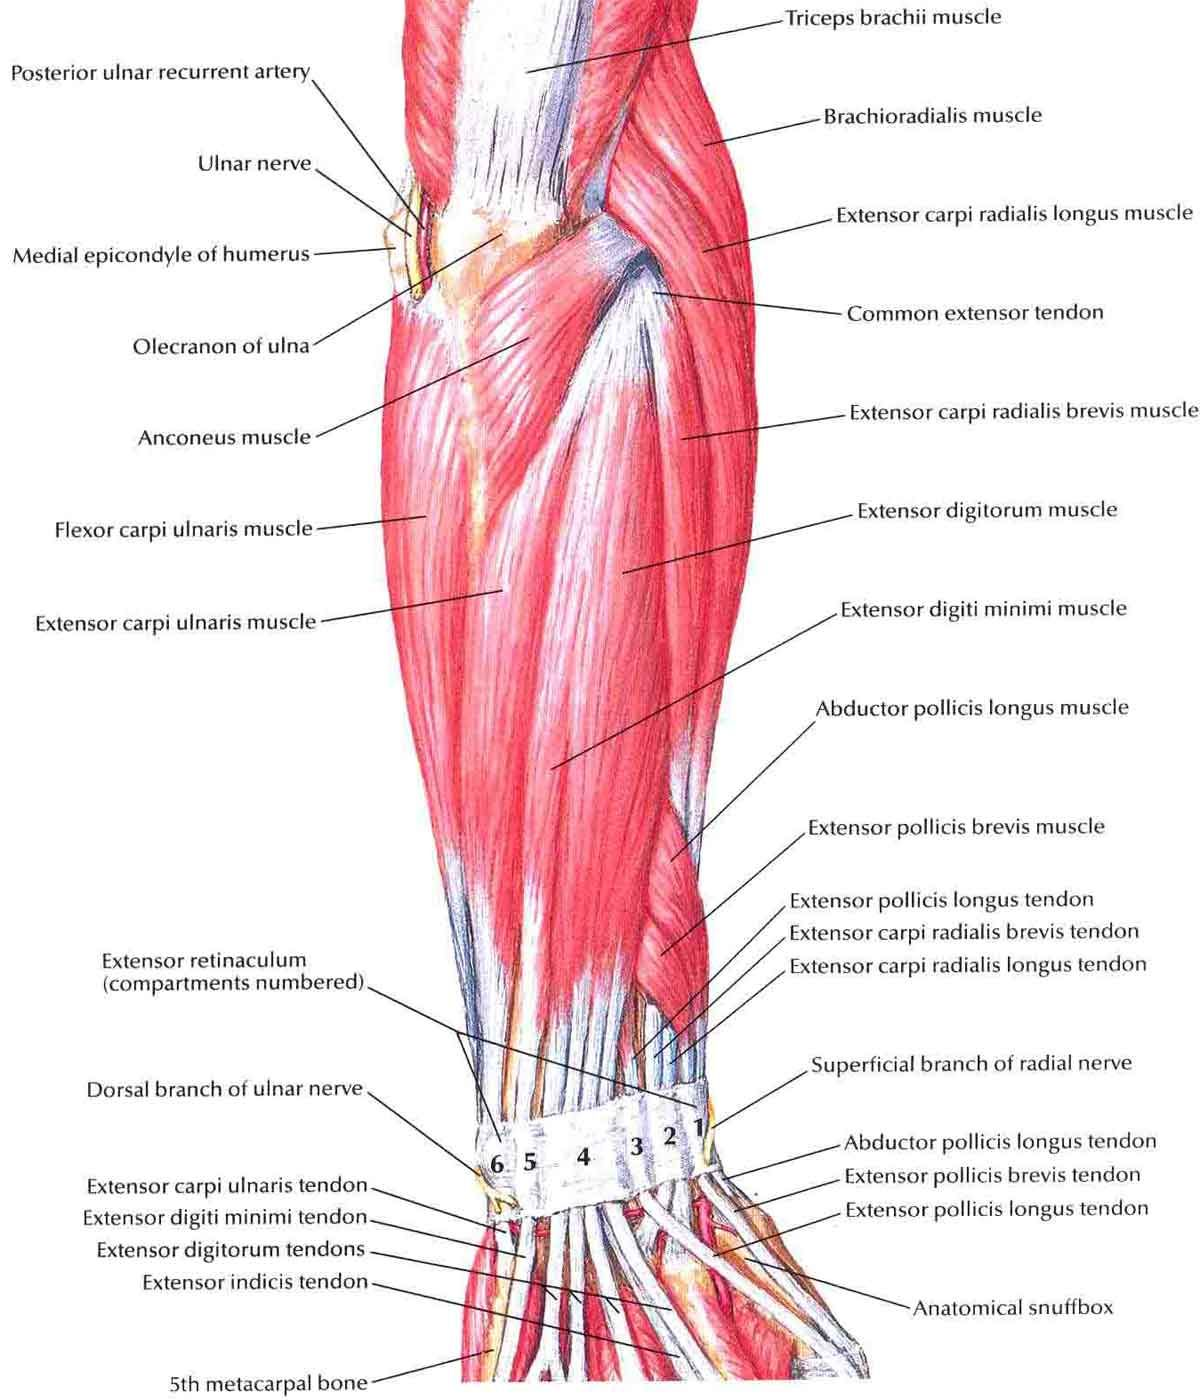 Hand Muscles Diagram 84 Fiero Wiring Of Forearm Arms Hands Forearms